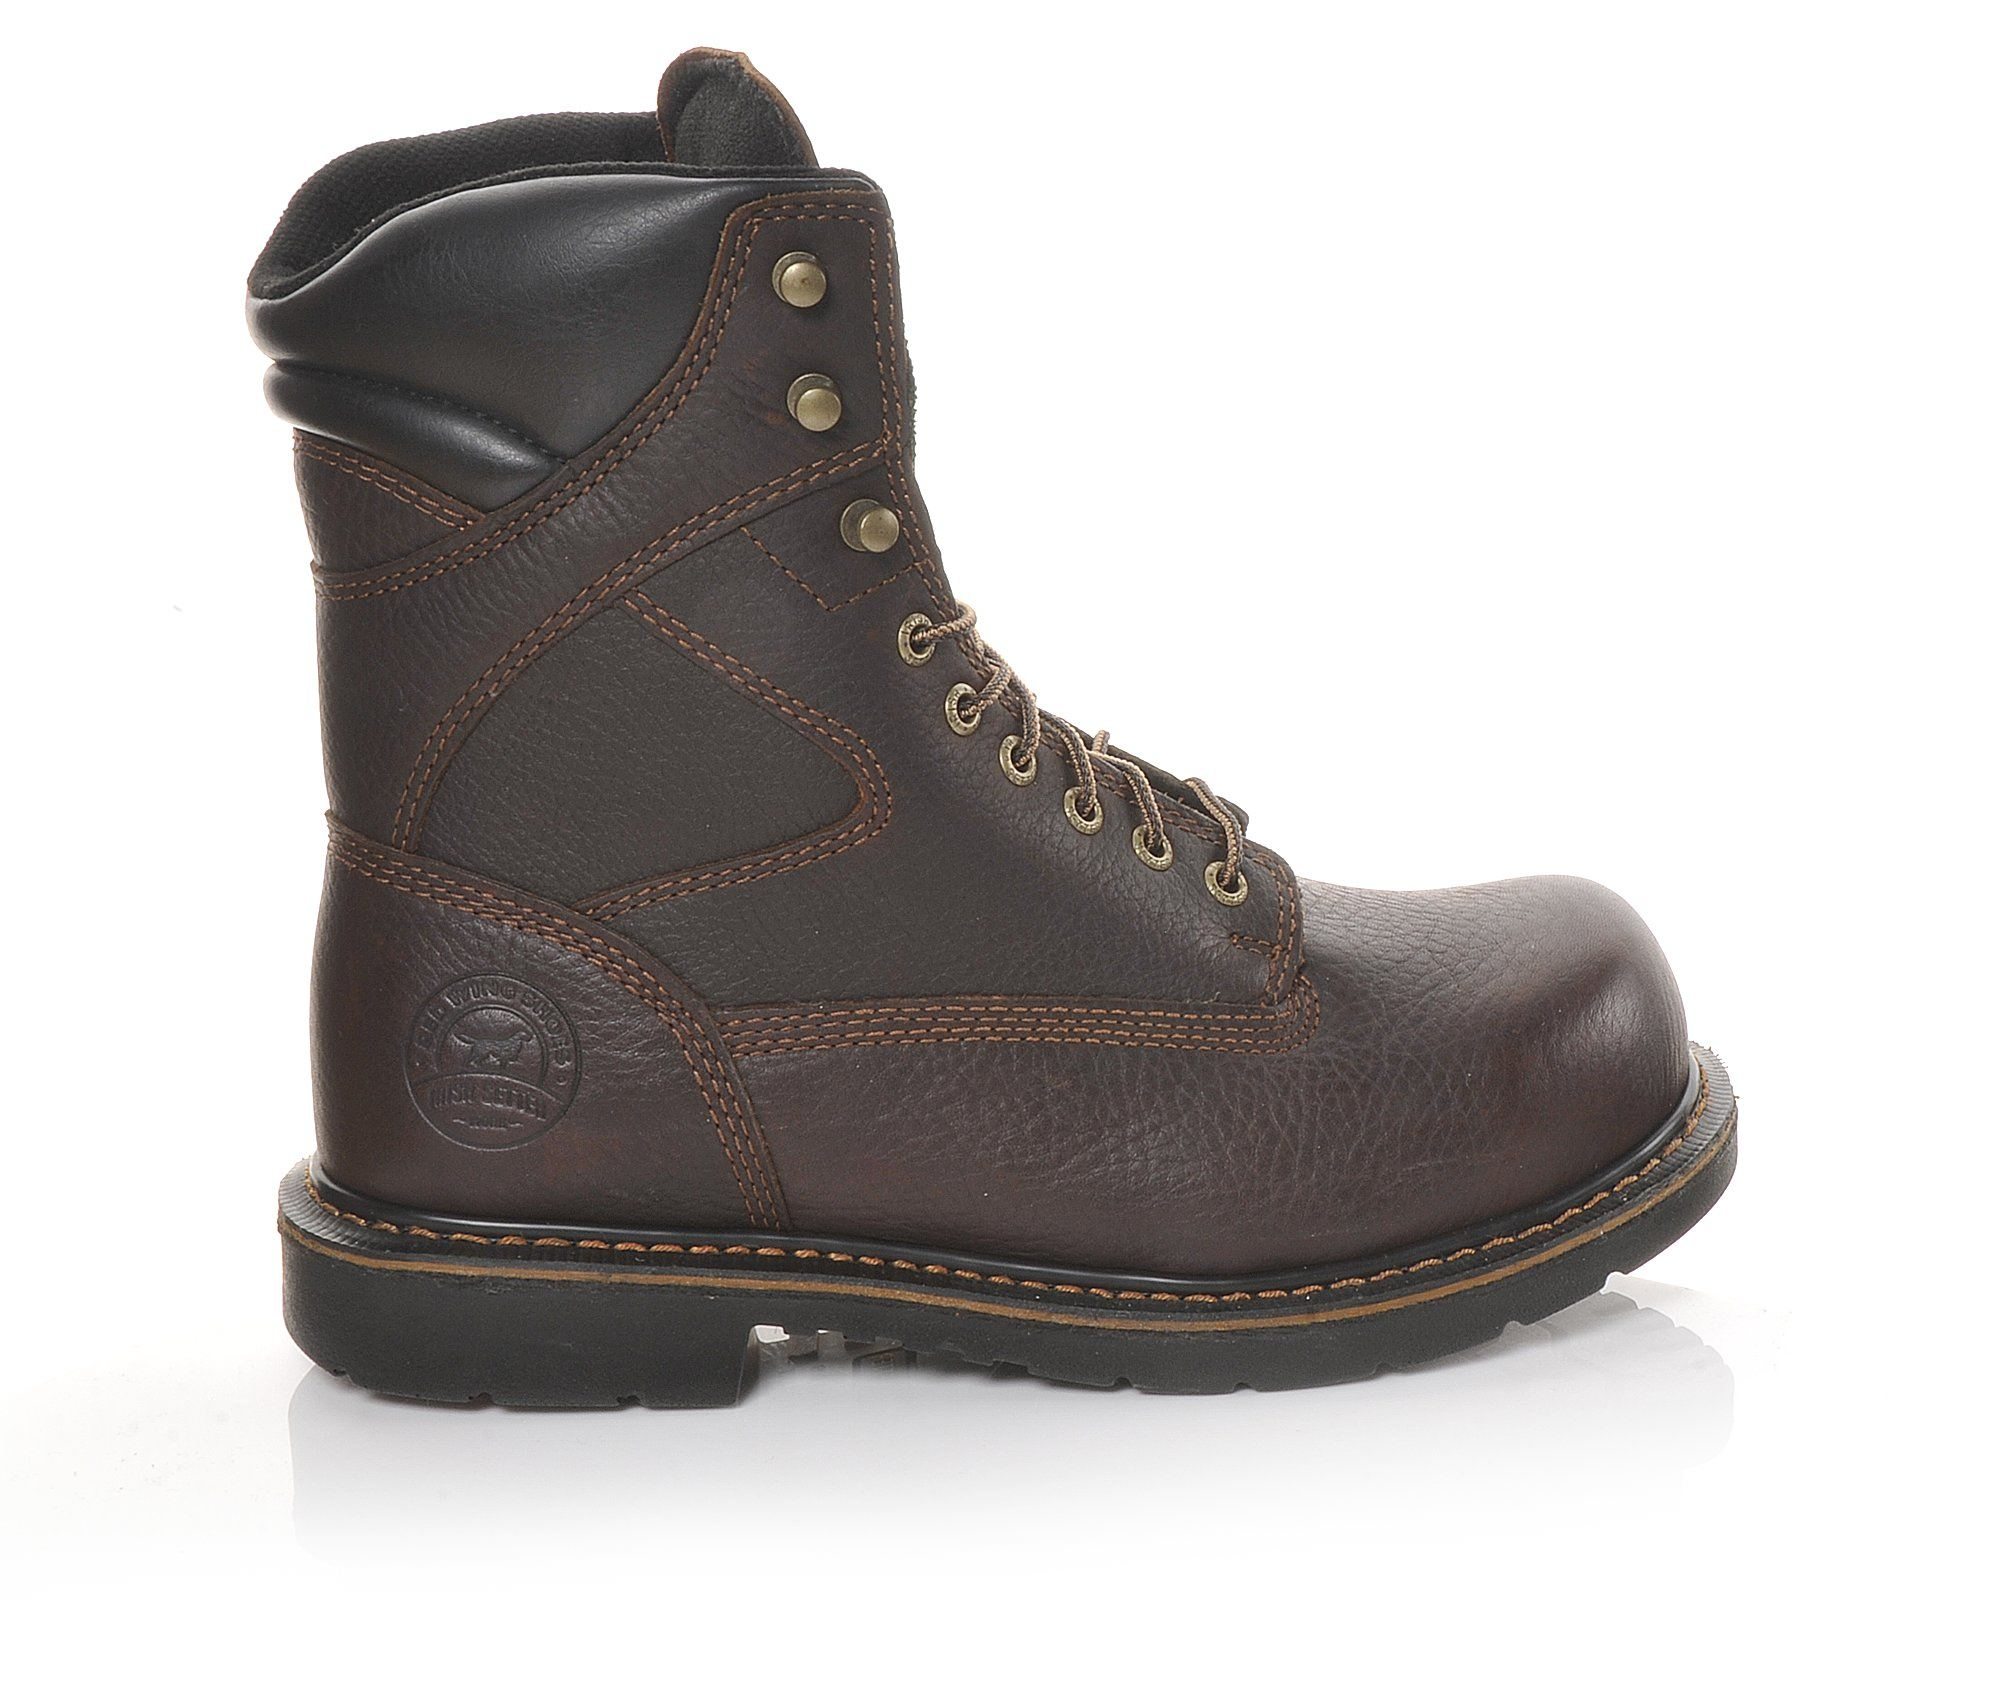 525c25253f513 red wing steel toe | Compare Prices on GoSale.com